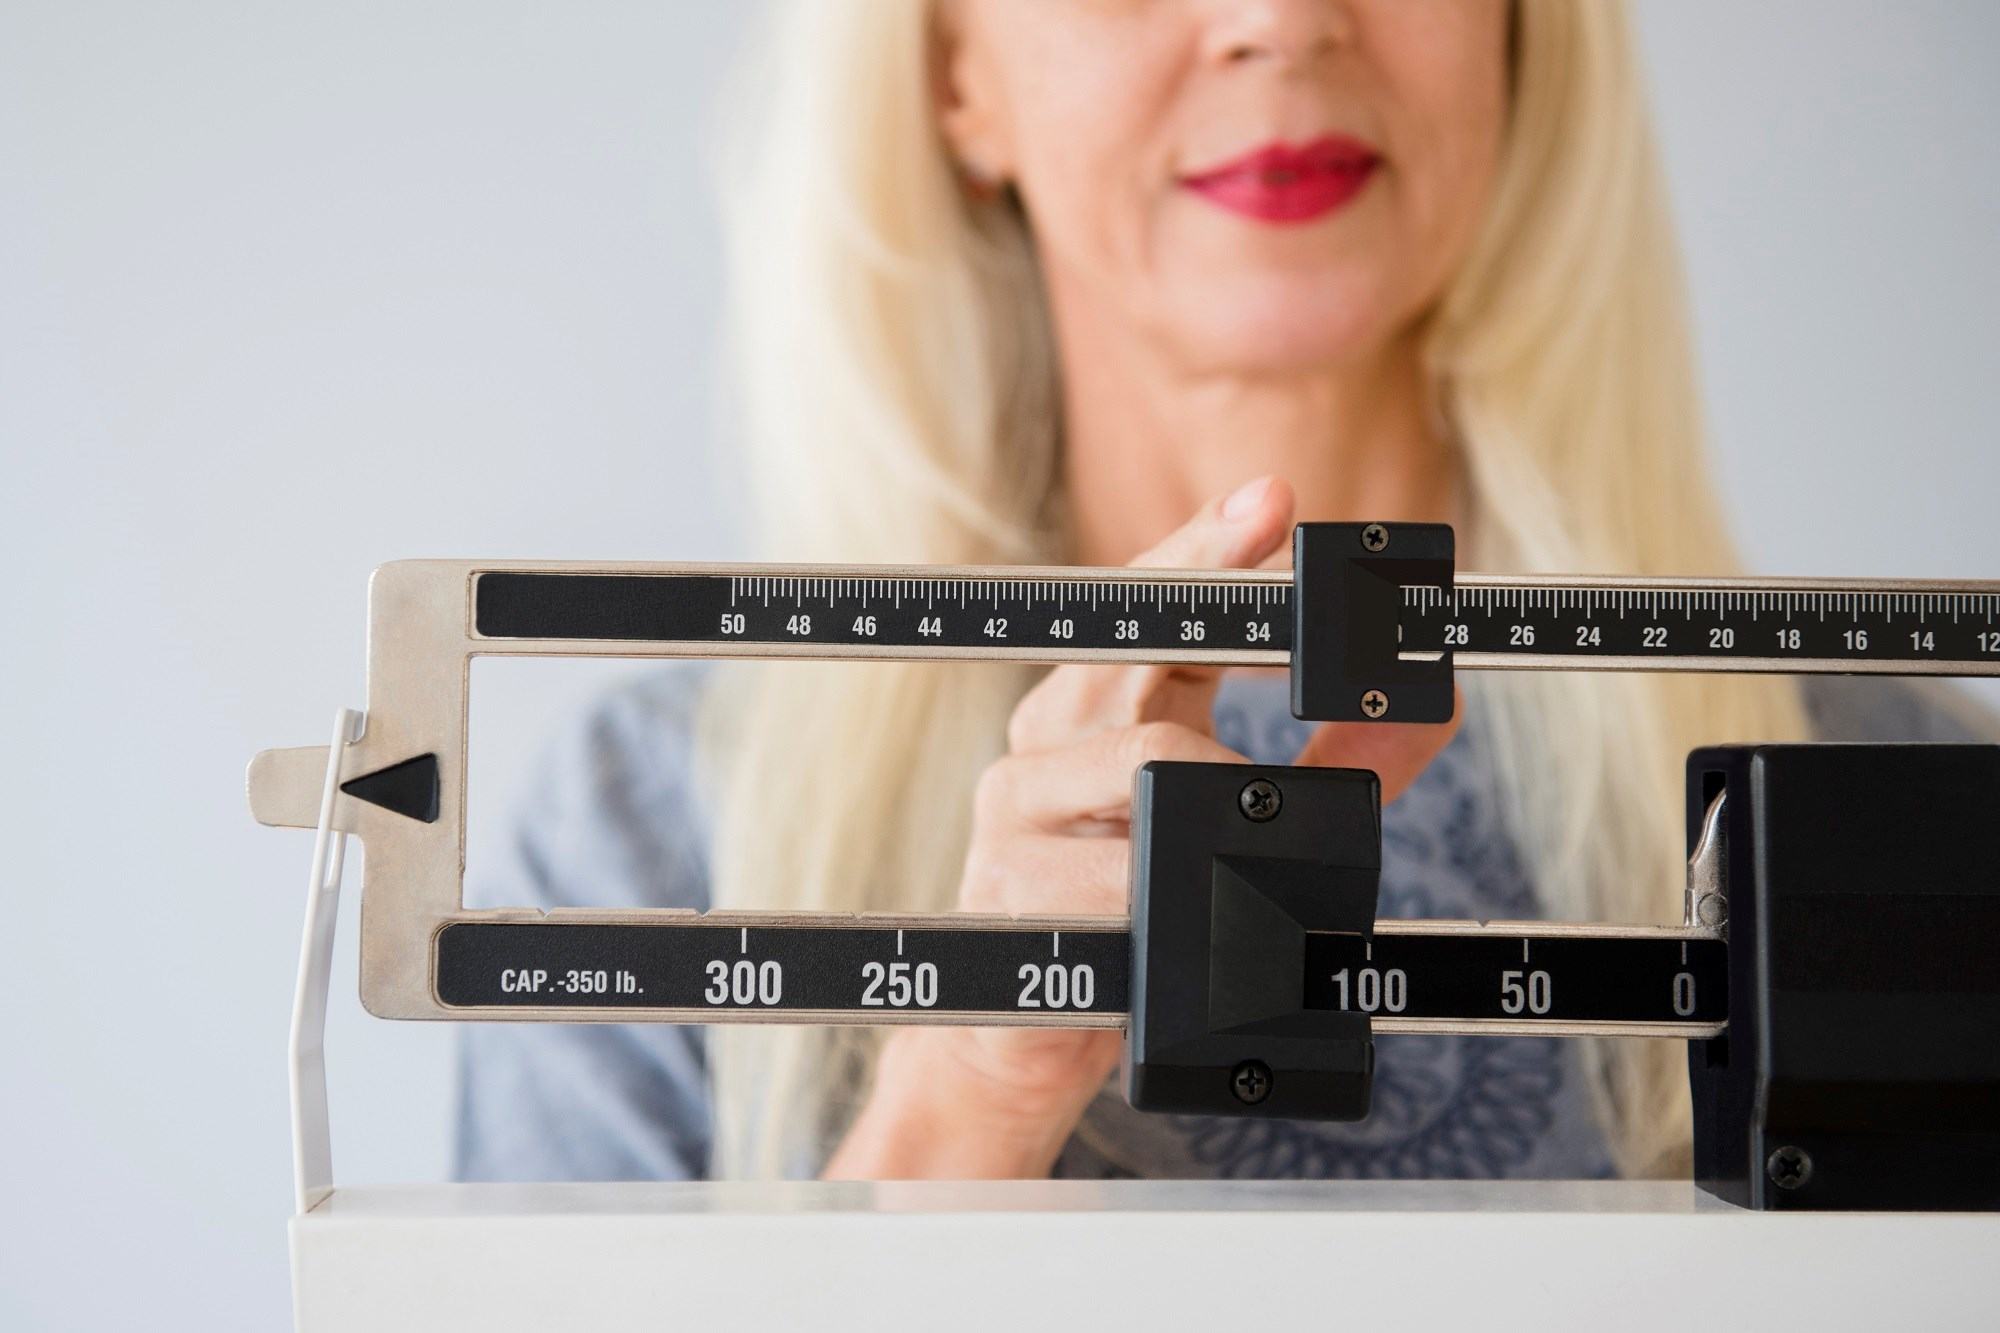 Postmenopausal women with weight loss have a reduced risk for breast cancer.